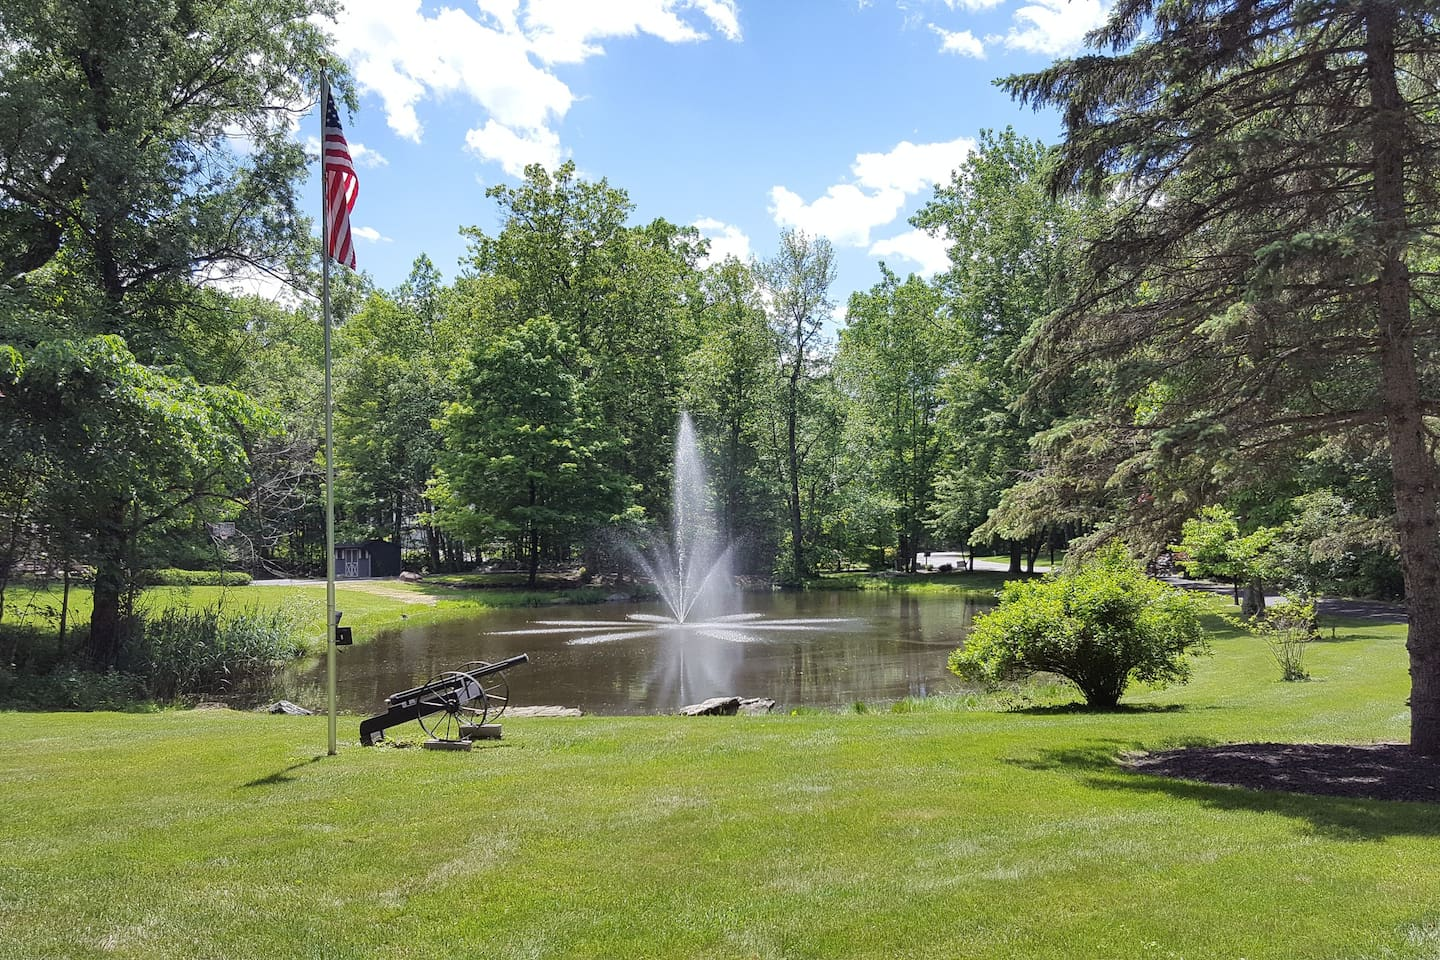 Pond With Fountain, Cannon & Flag